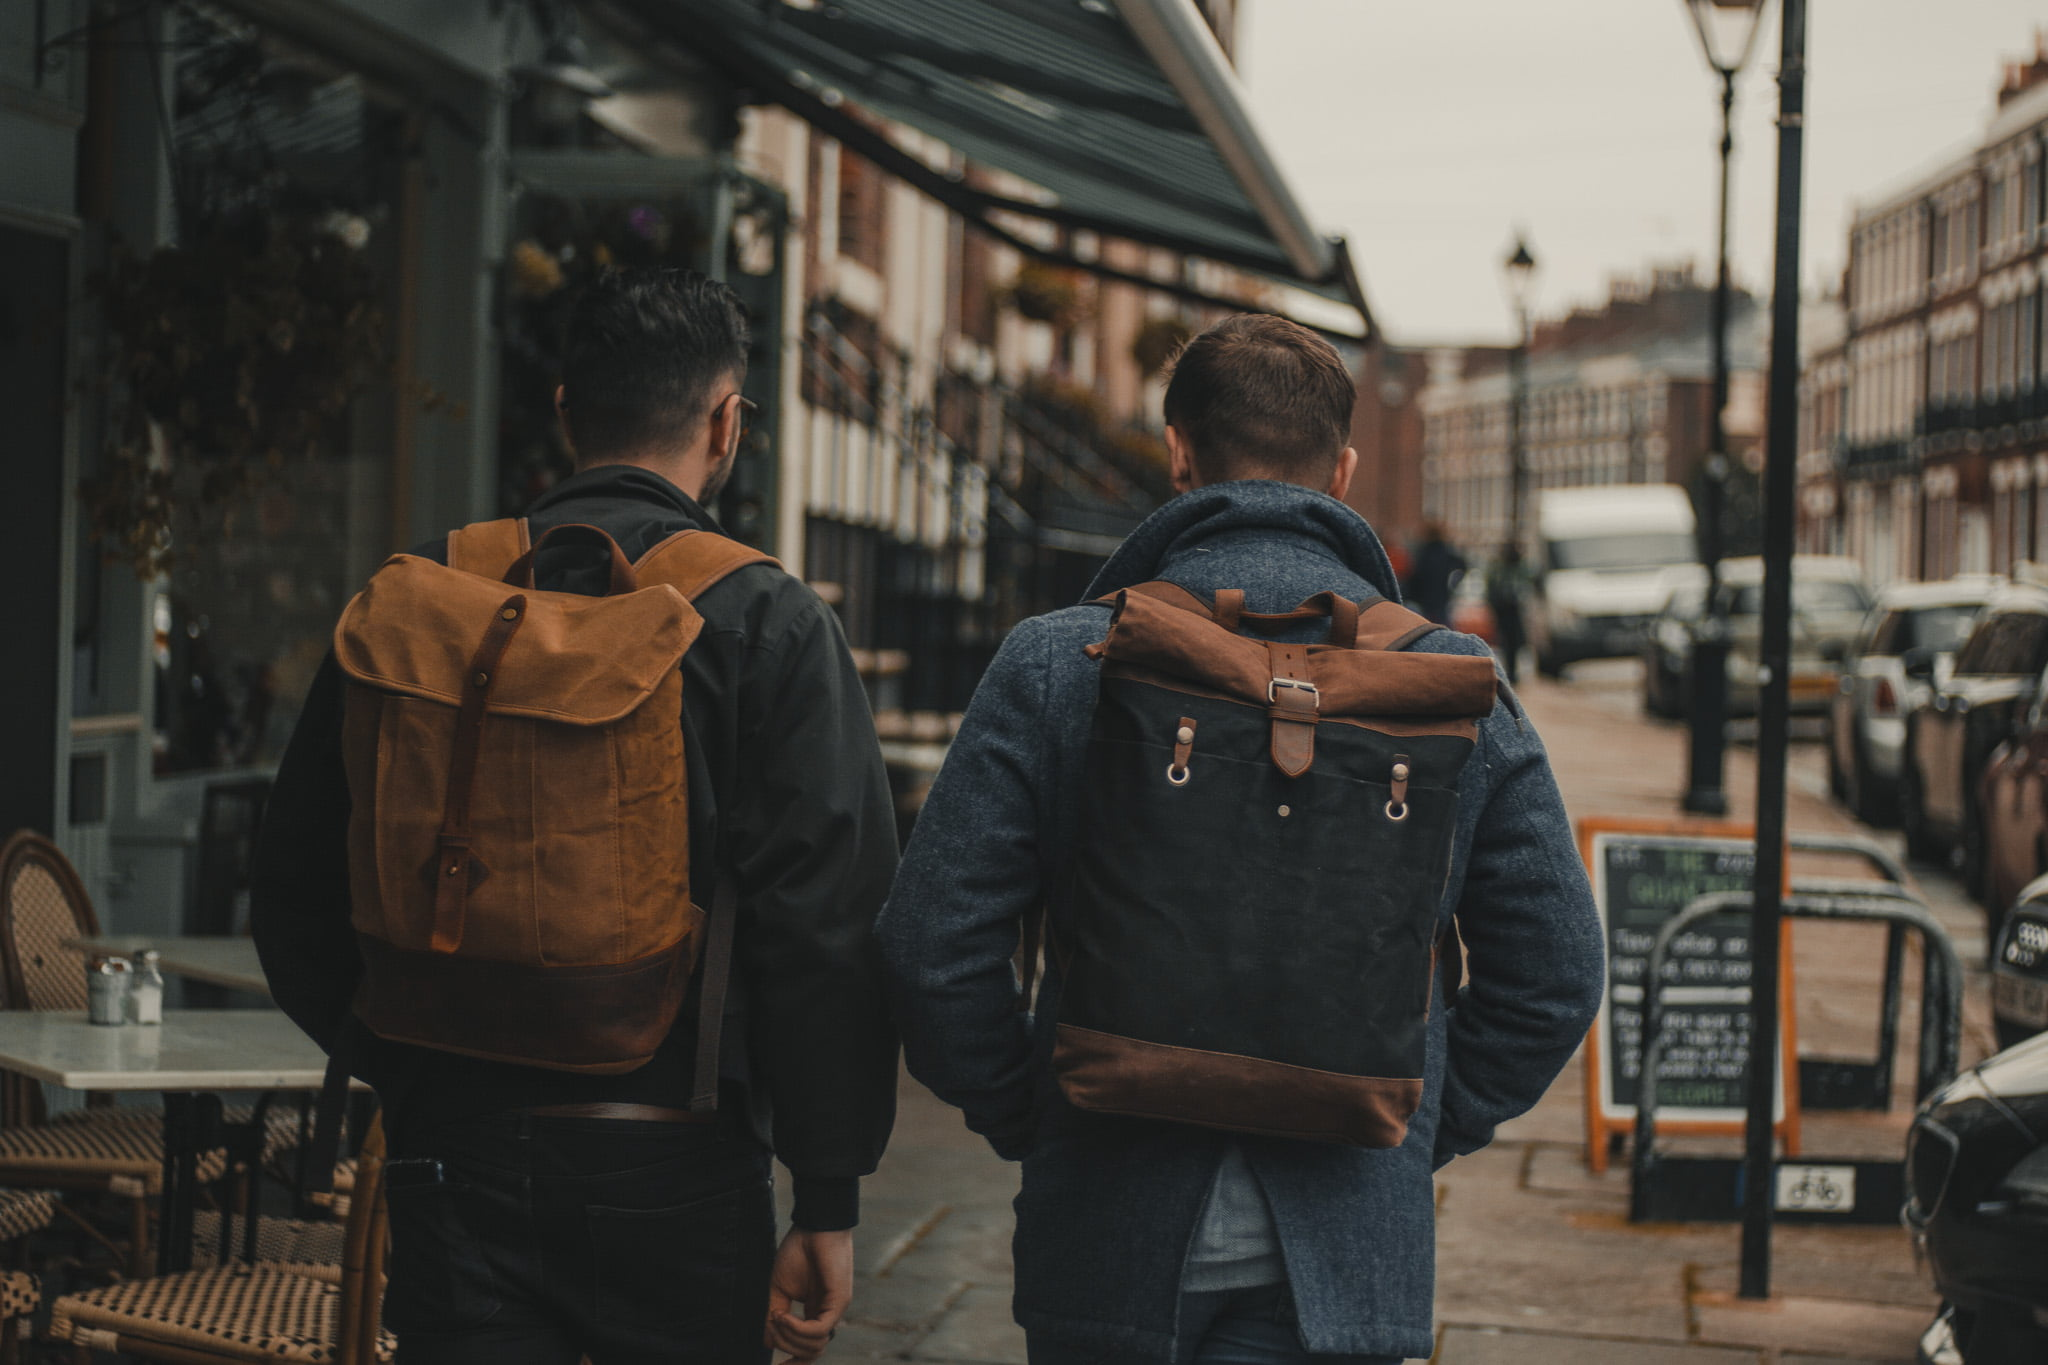 Waxed Cotton Canvas and Leather Backpack Rucksack - Menswear Denim Rugged Style Outfit - Waxed Canvas & Leather Backpacks by Oldfield - Wylde Coffee Liverpool Heswall